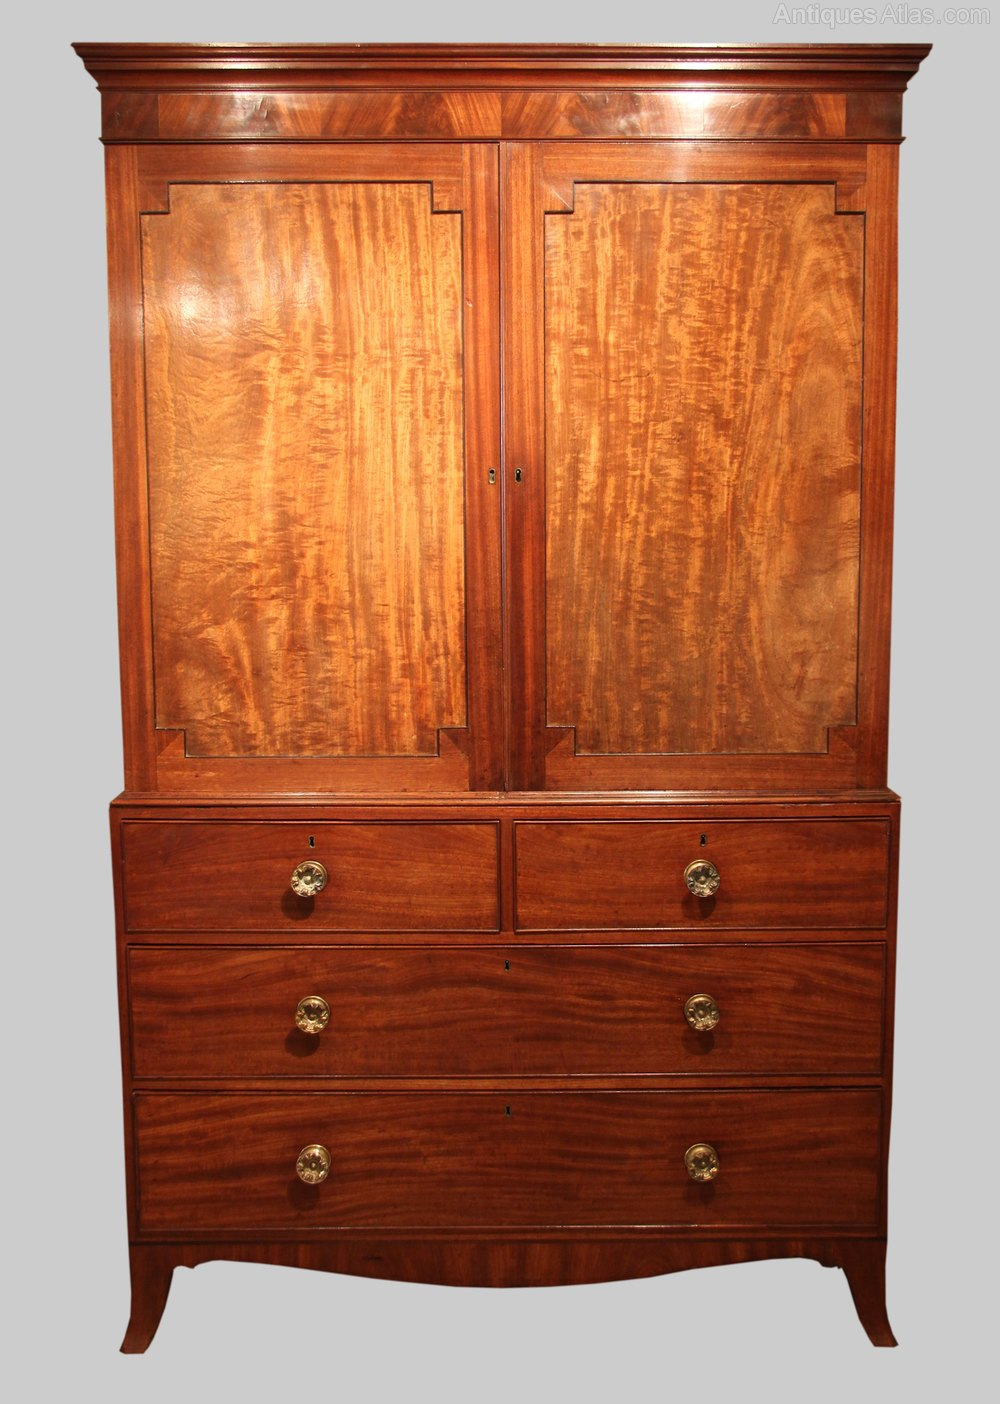 George iii mahogany linen press circa 1800 antiques atlas for Linen press